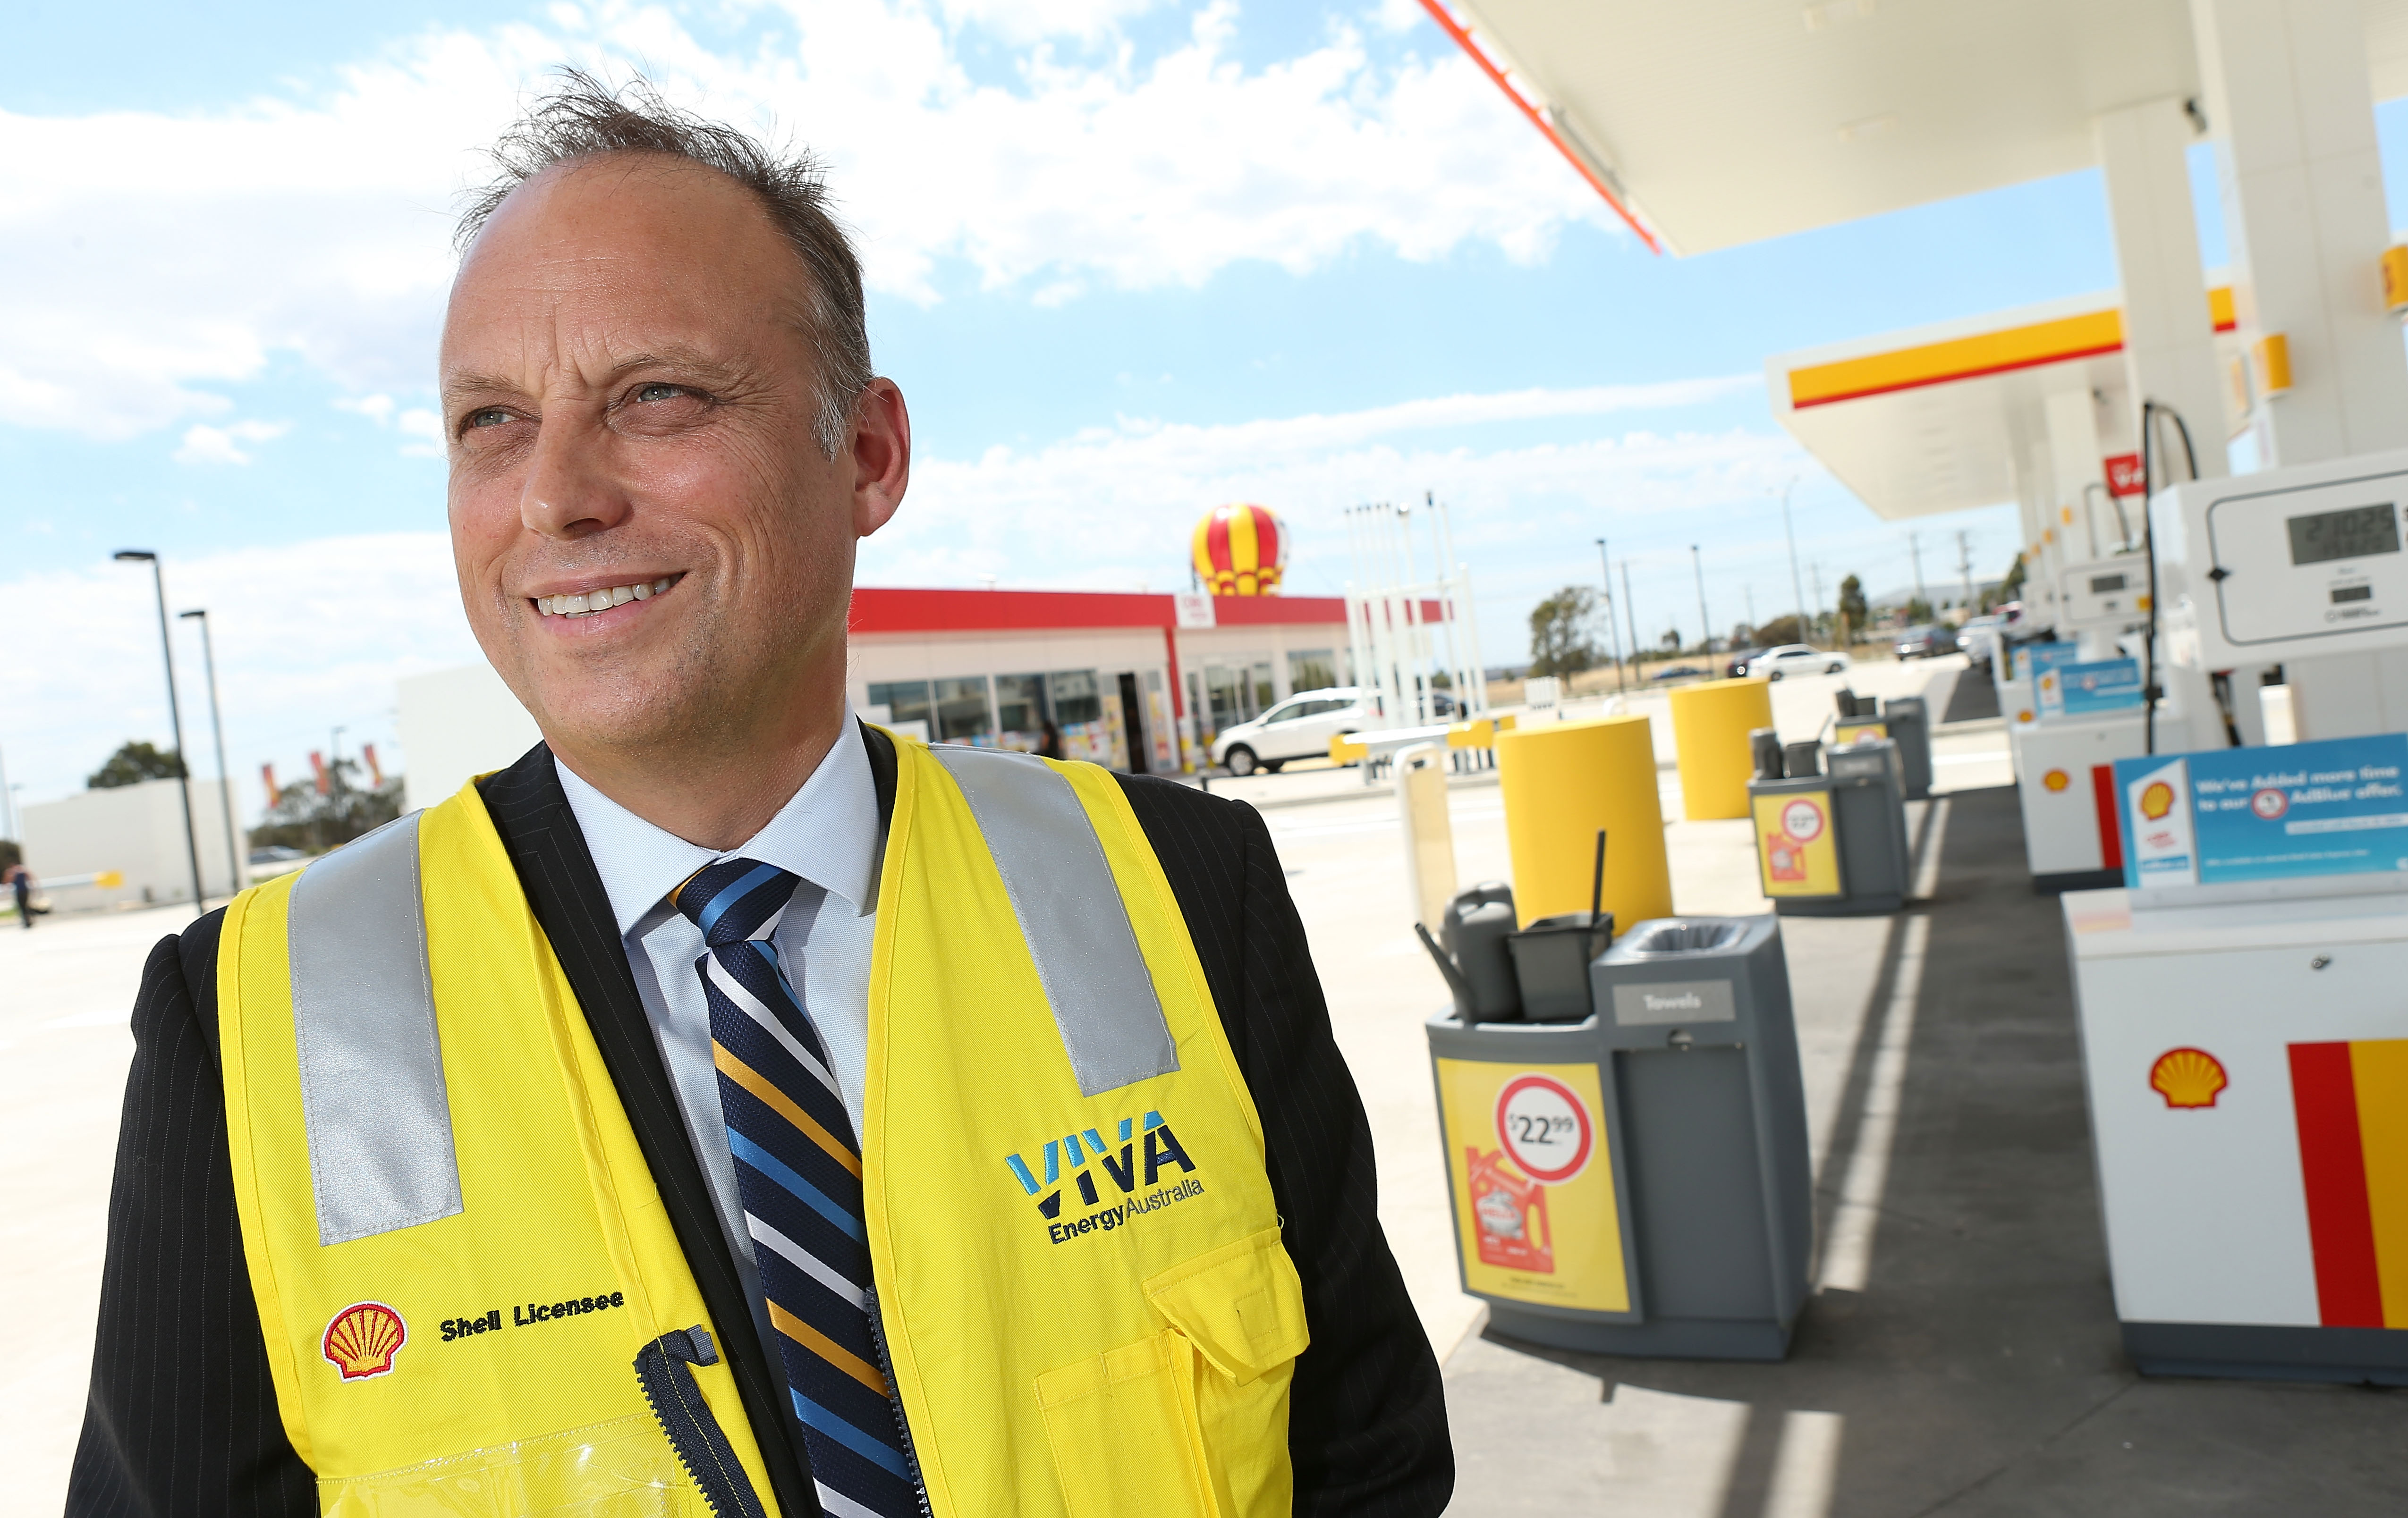 Geelong Oil Refinery On The Brink Of Closure Amid Covid 19 Restrictions